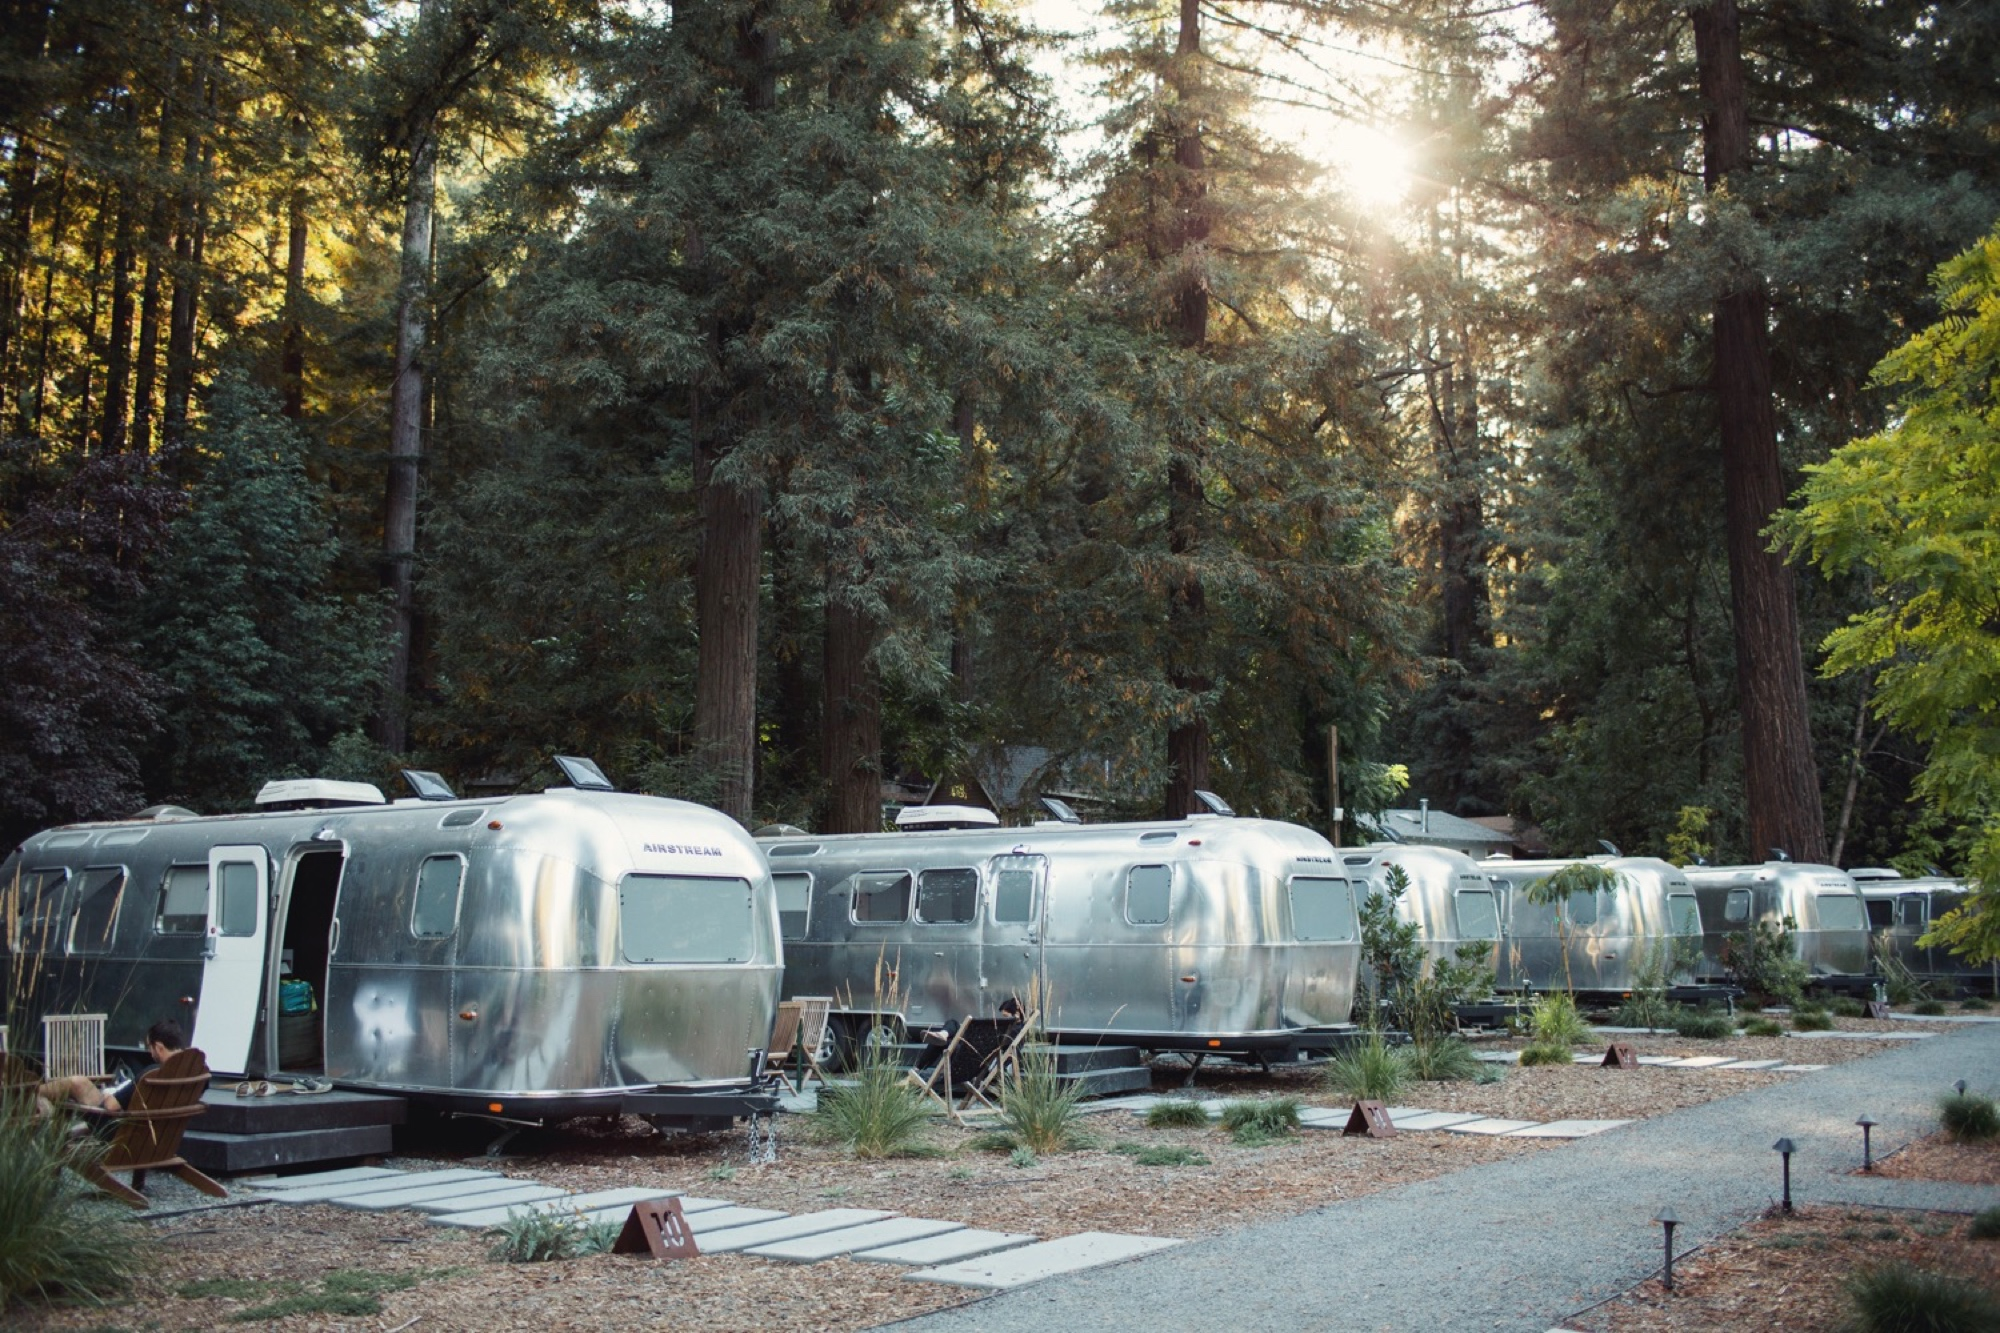 Family session in an Airstream Camp on the Russian River